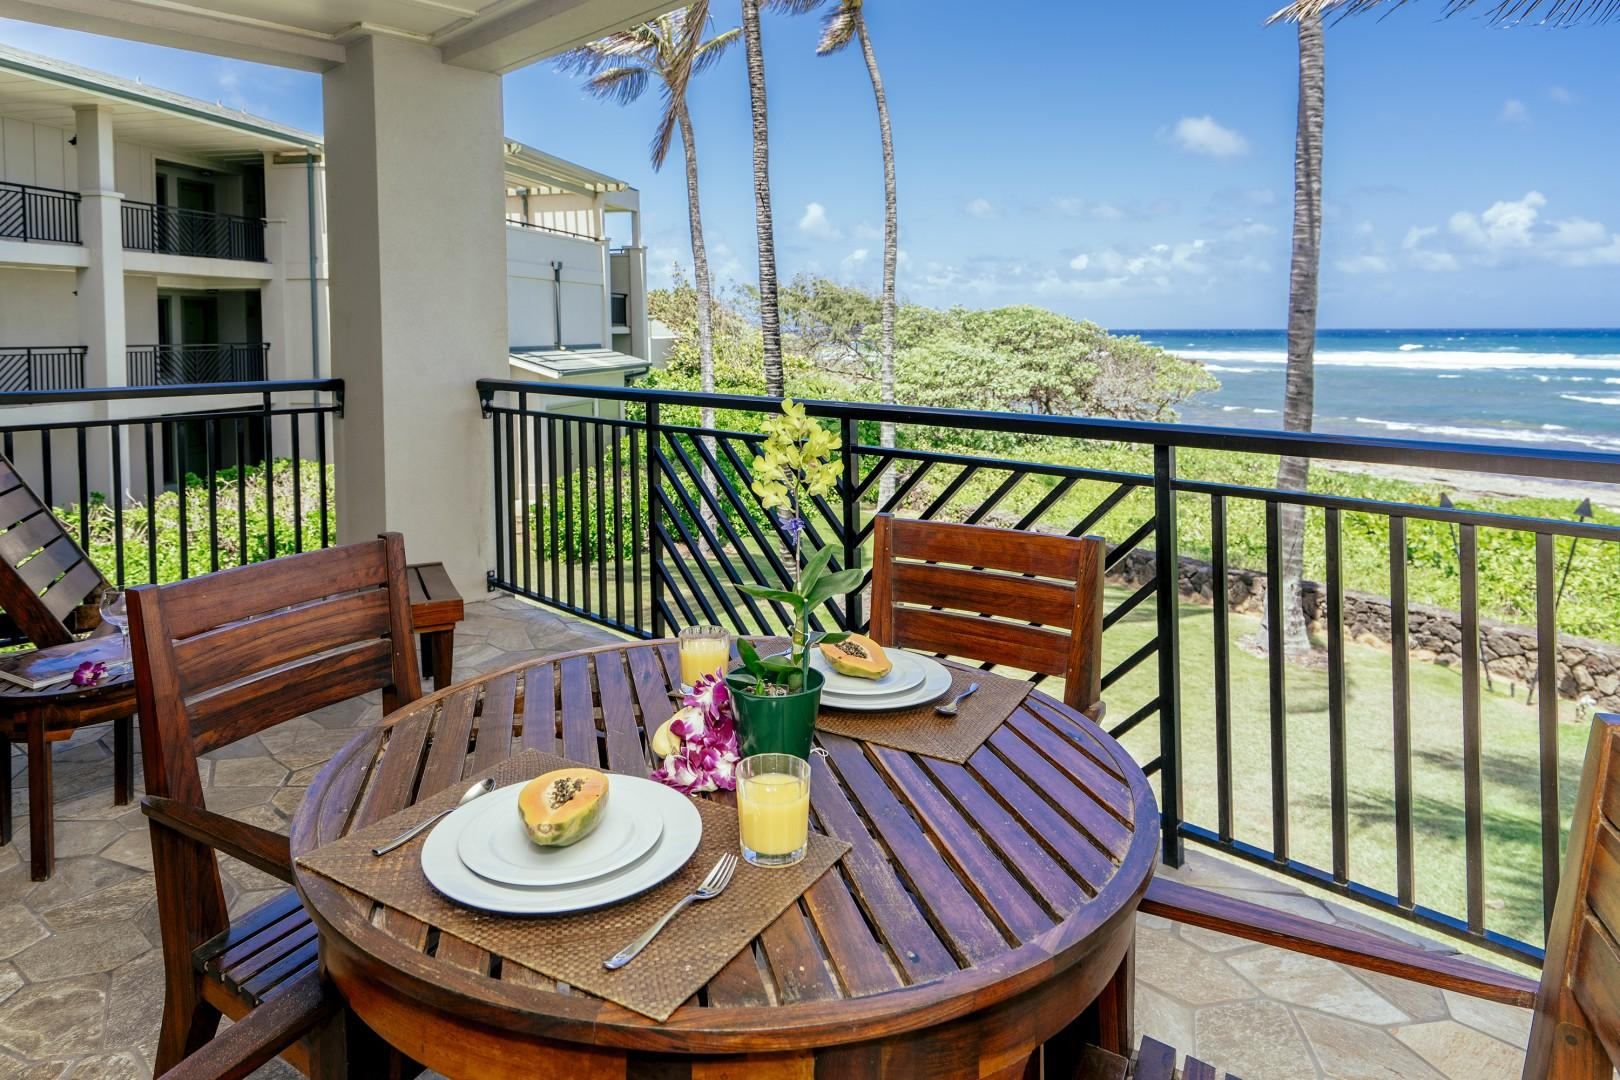 Enjoy ocean-front dining right on your lanai.